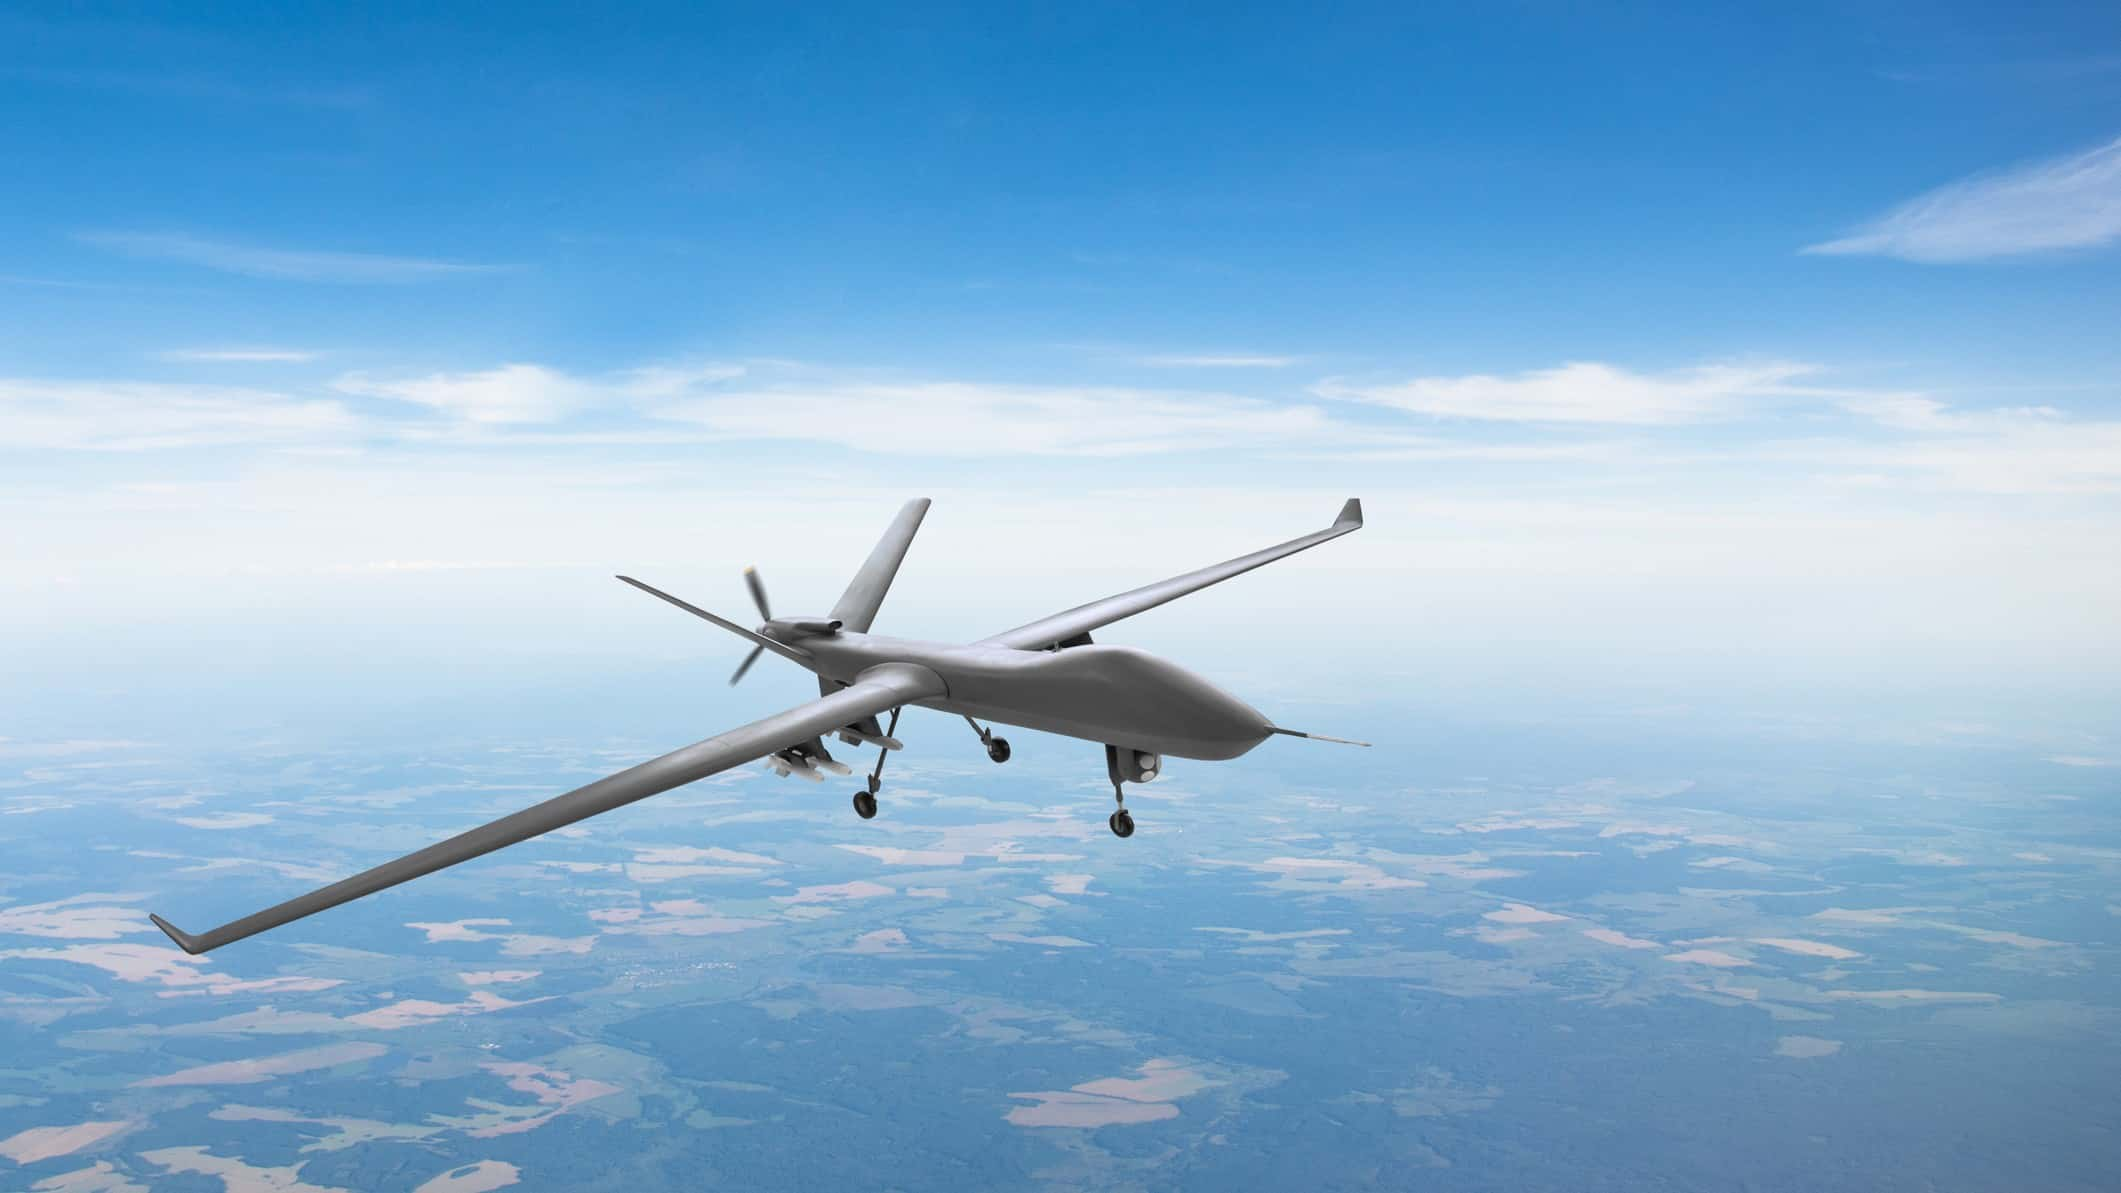 drone flying against backdrop of blue sky representing drone asx share price